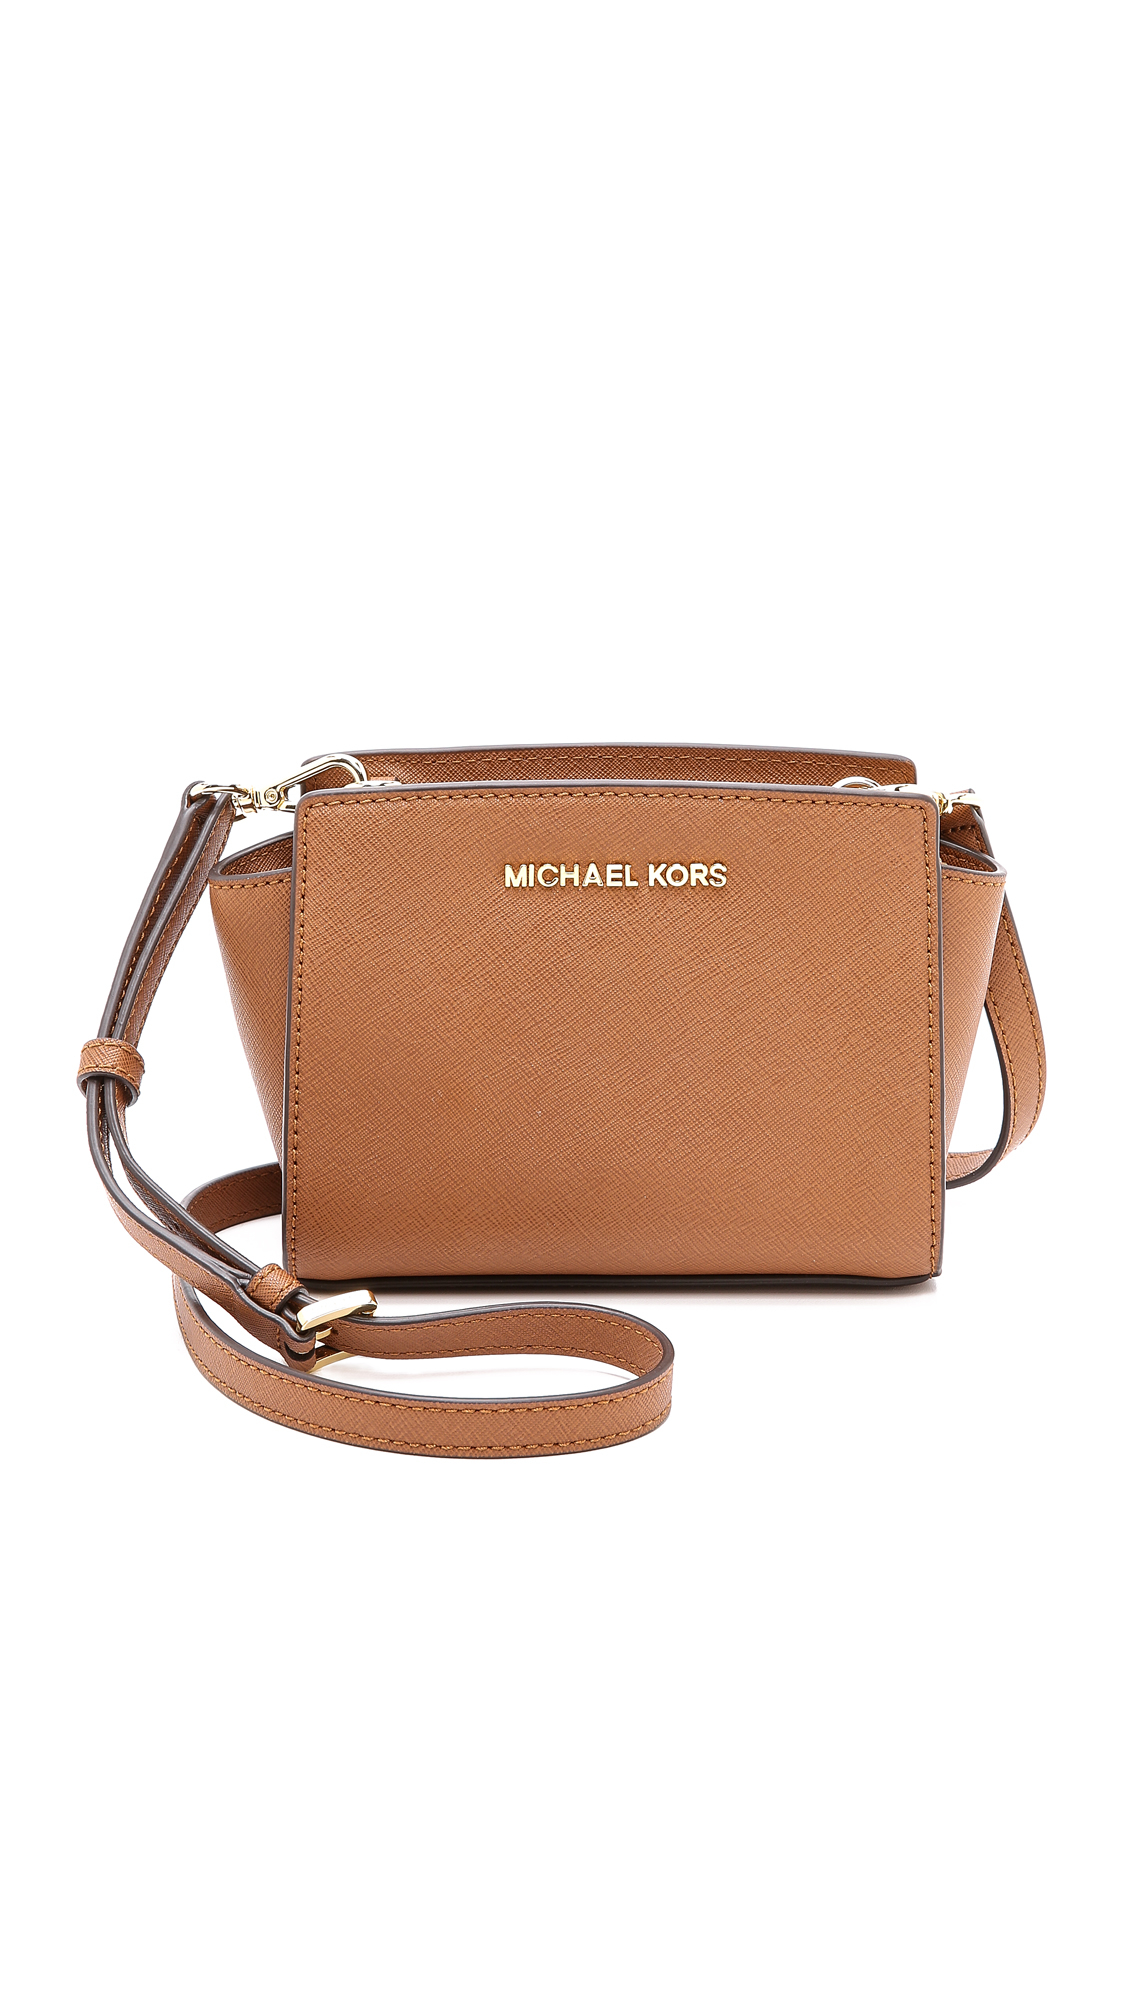 cdc8be89861545 Gallery. Previously sold at: Shopbop · Women's Leather Messenger Bags  Women's Michael By Michael Kors Selma